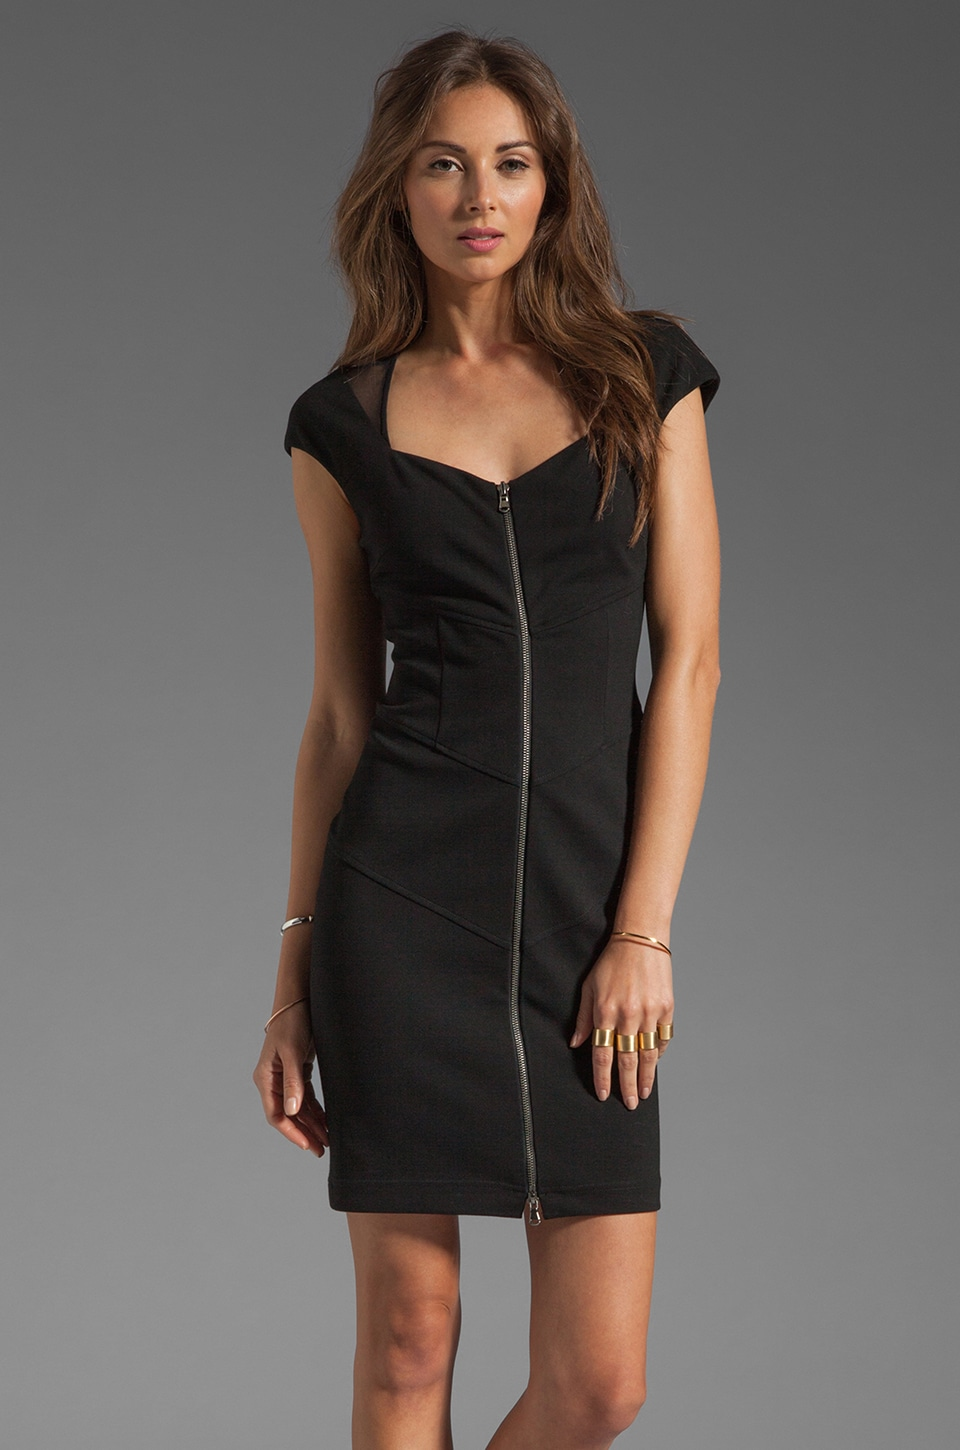 Catherine Malandrino Cap Sleeve Front Zip Dress in Black